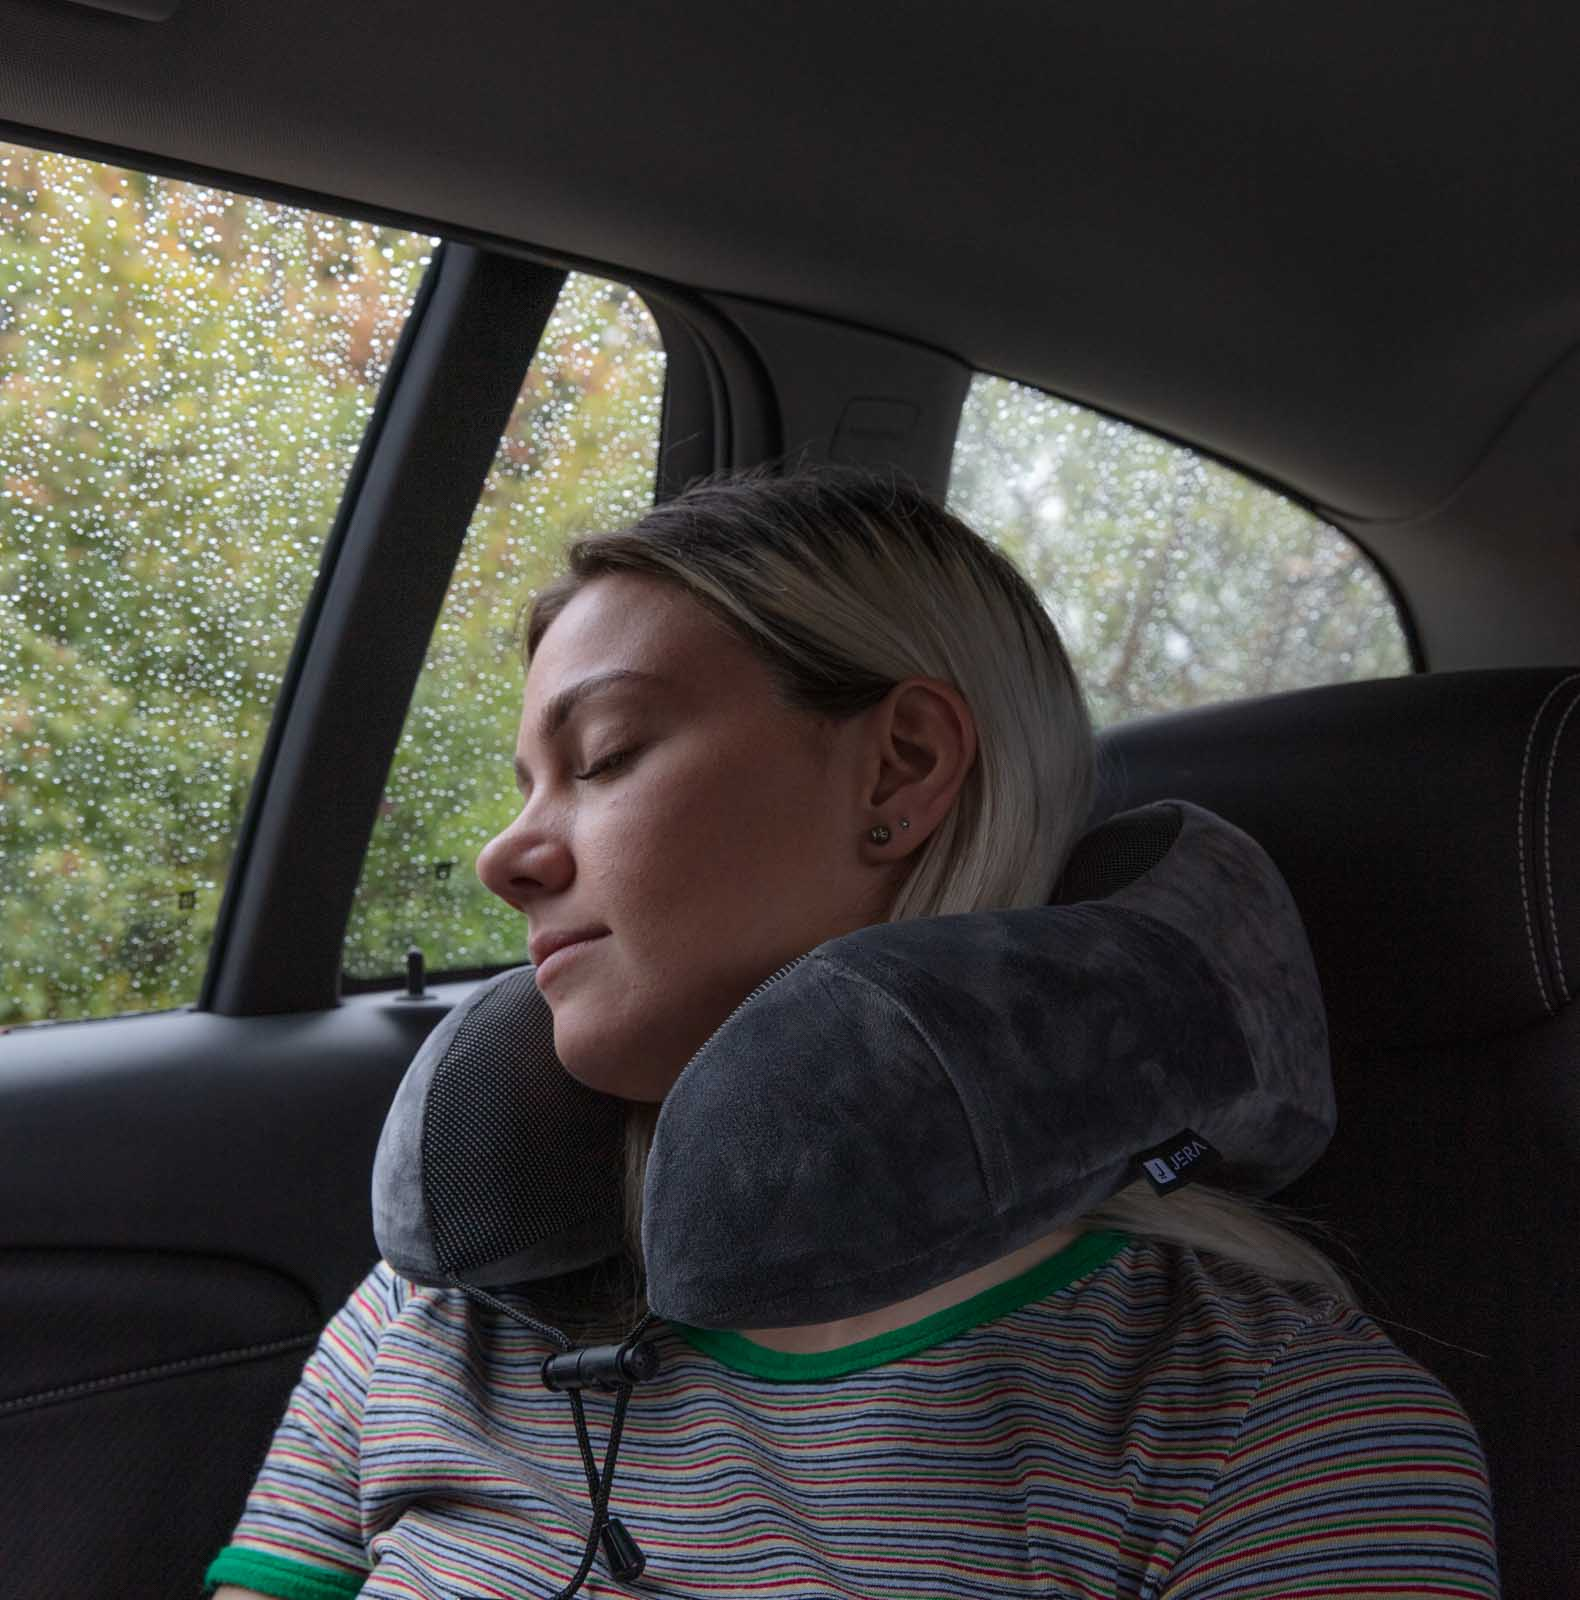 Jera travel pillow advertising photo of girl sleeping in car during day - Sample Amazon Product photography